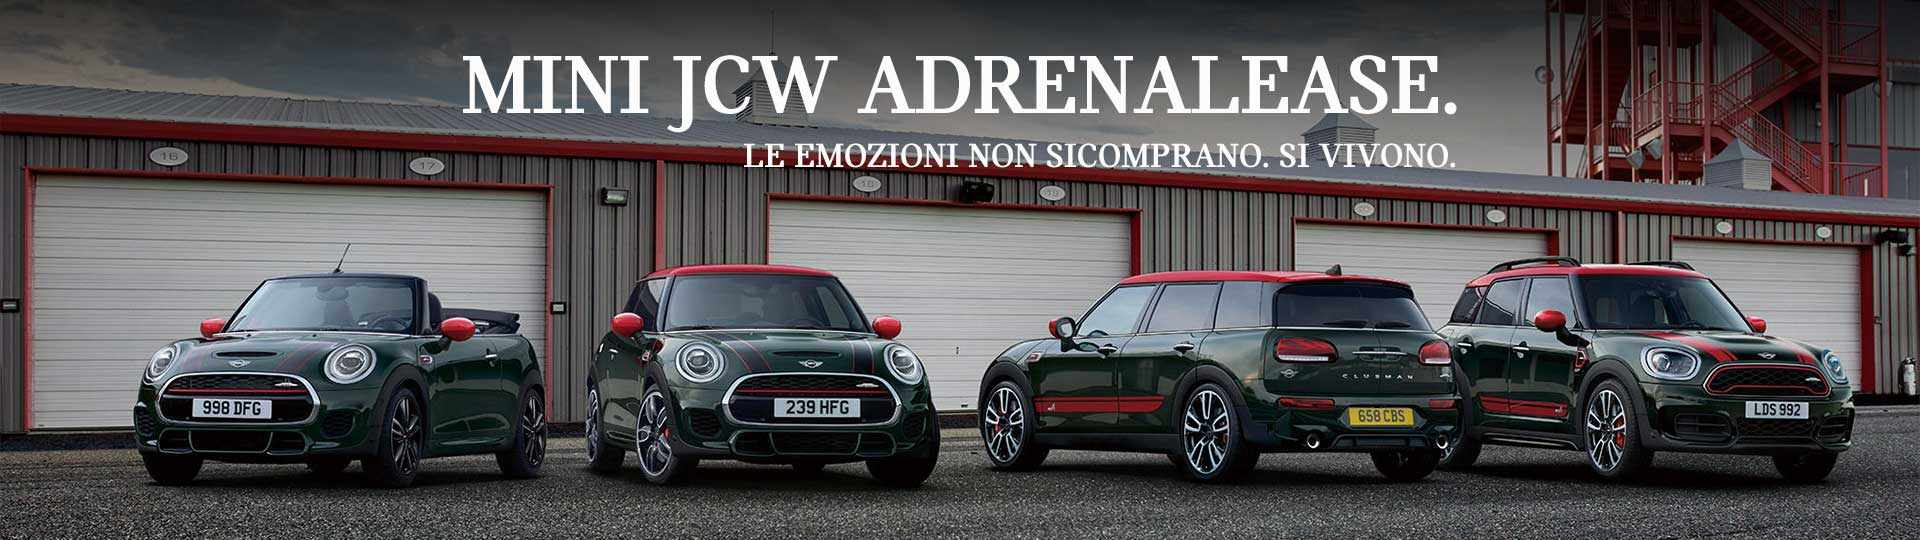 header_mini_jcw_adrenalease.jpg